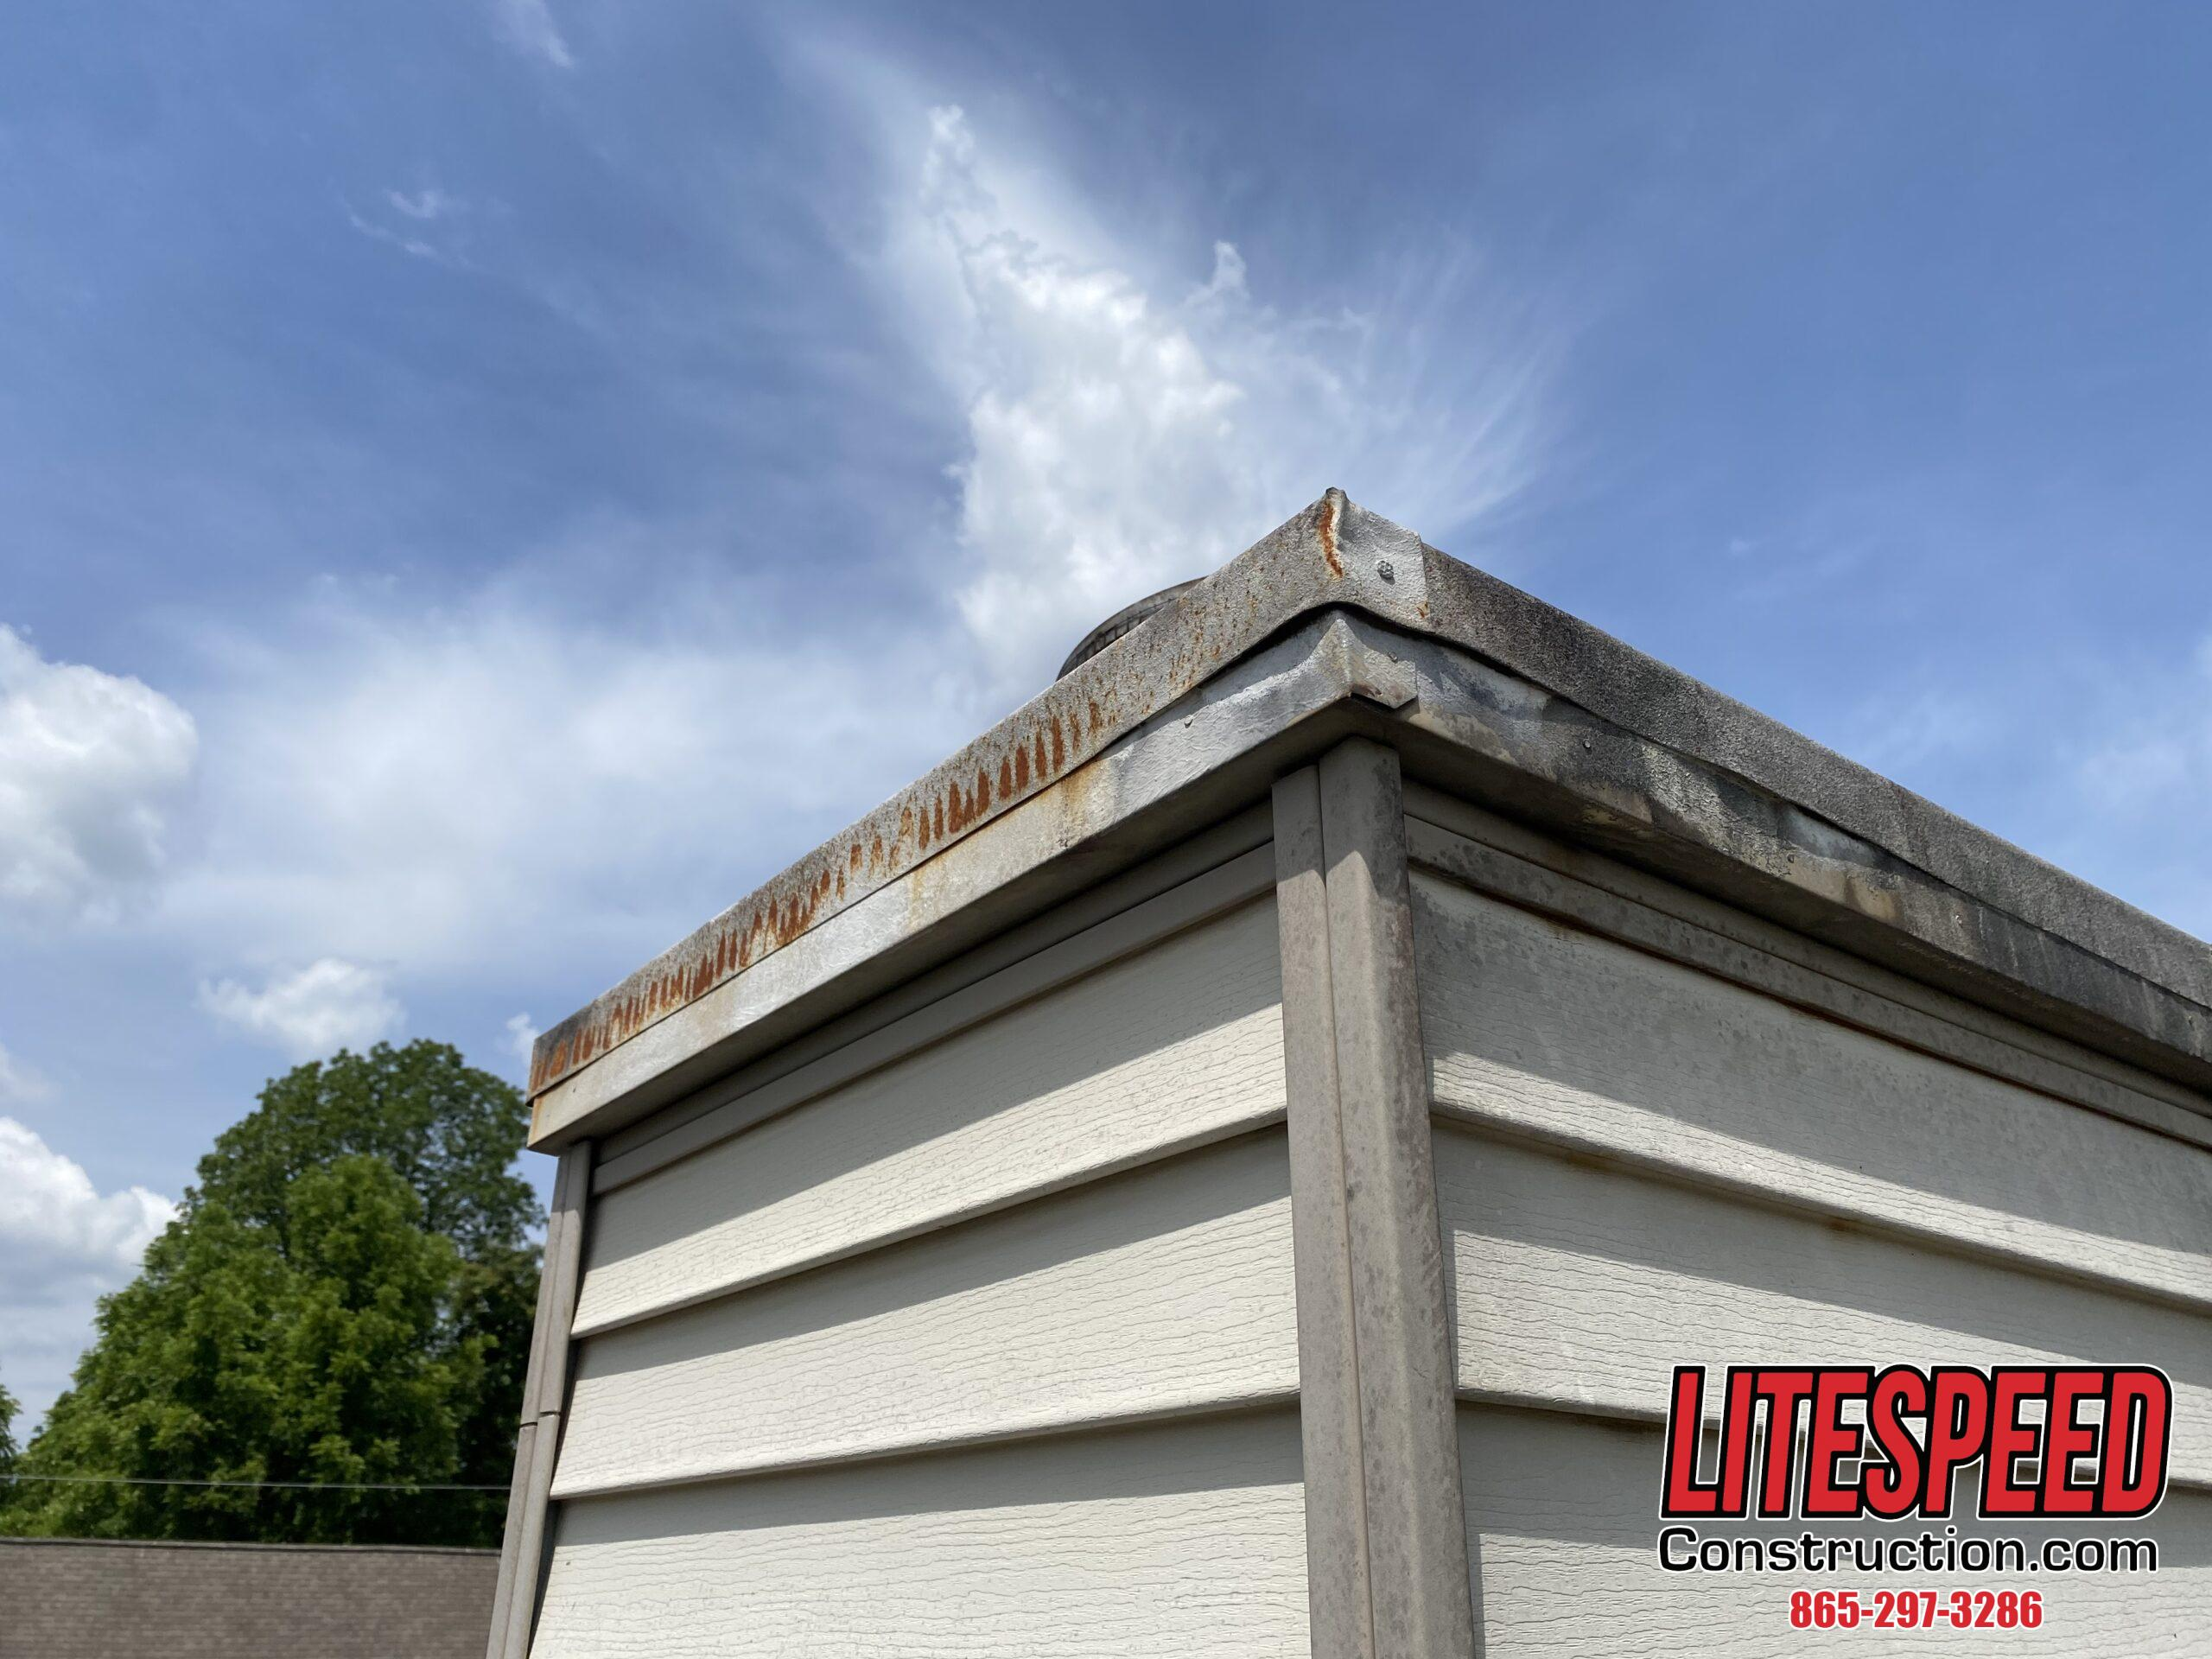 This is a picture of a rusty chimney cap on a steep roof